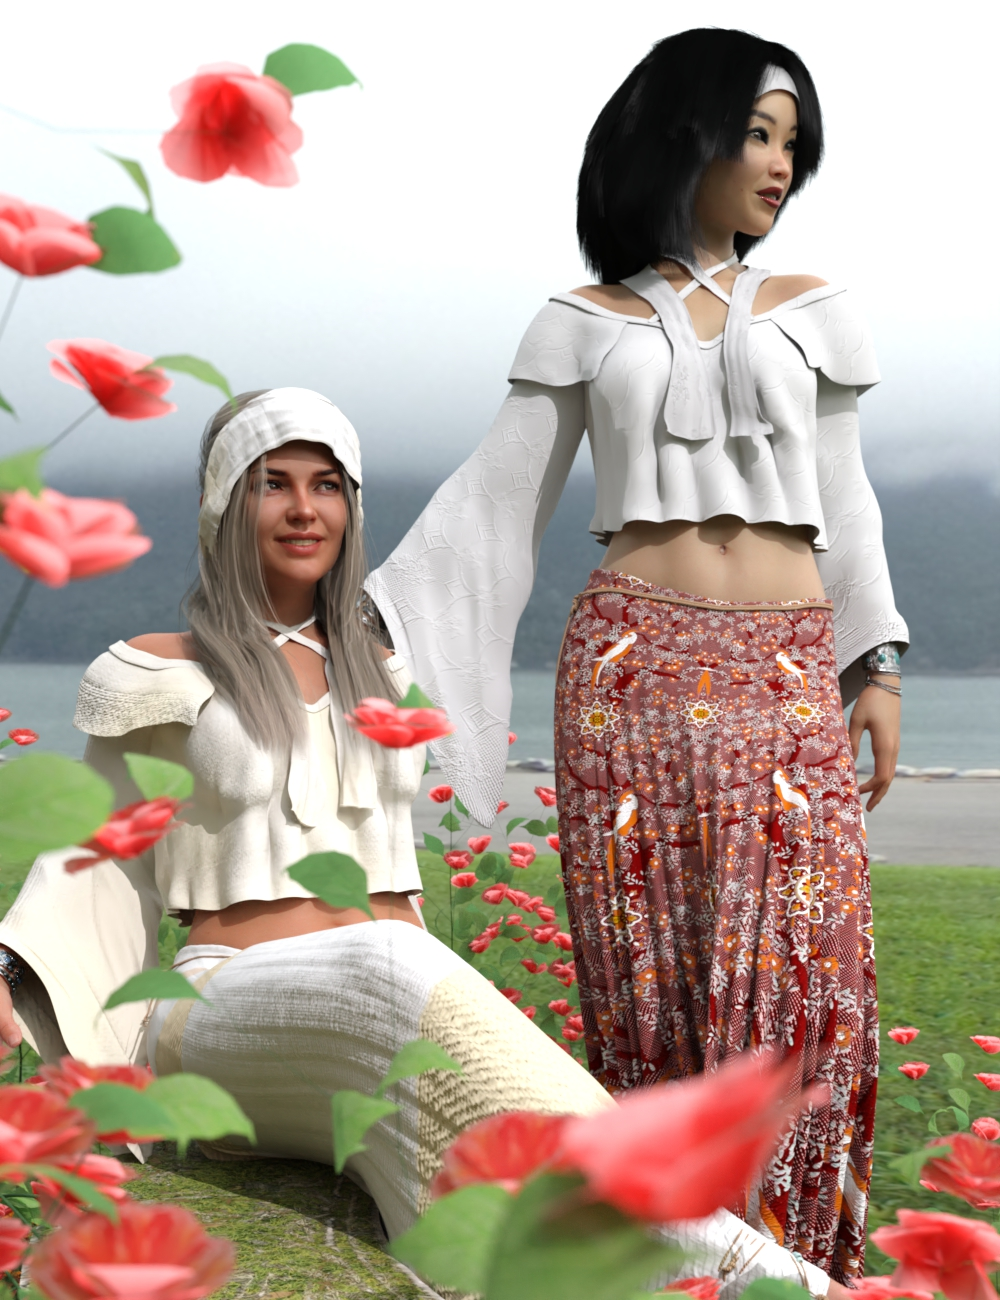 dForce Flower Girl Outfit for Genesis 8 Females by: Sixus1 Media, 3D Models by Daz 3D